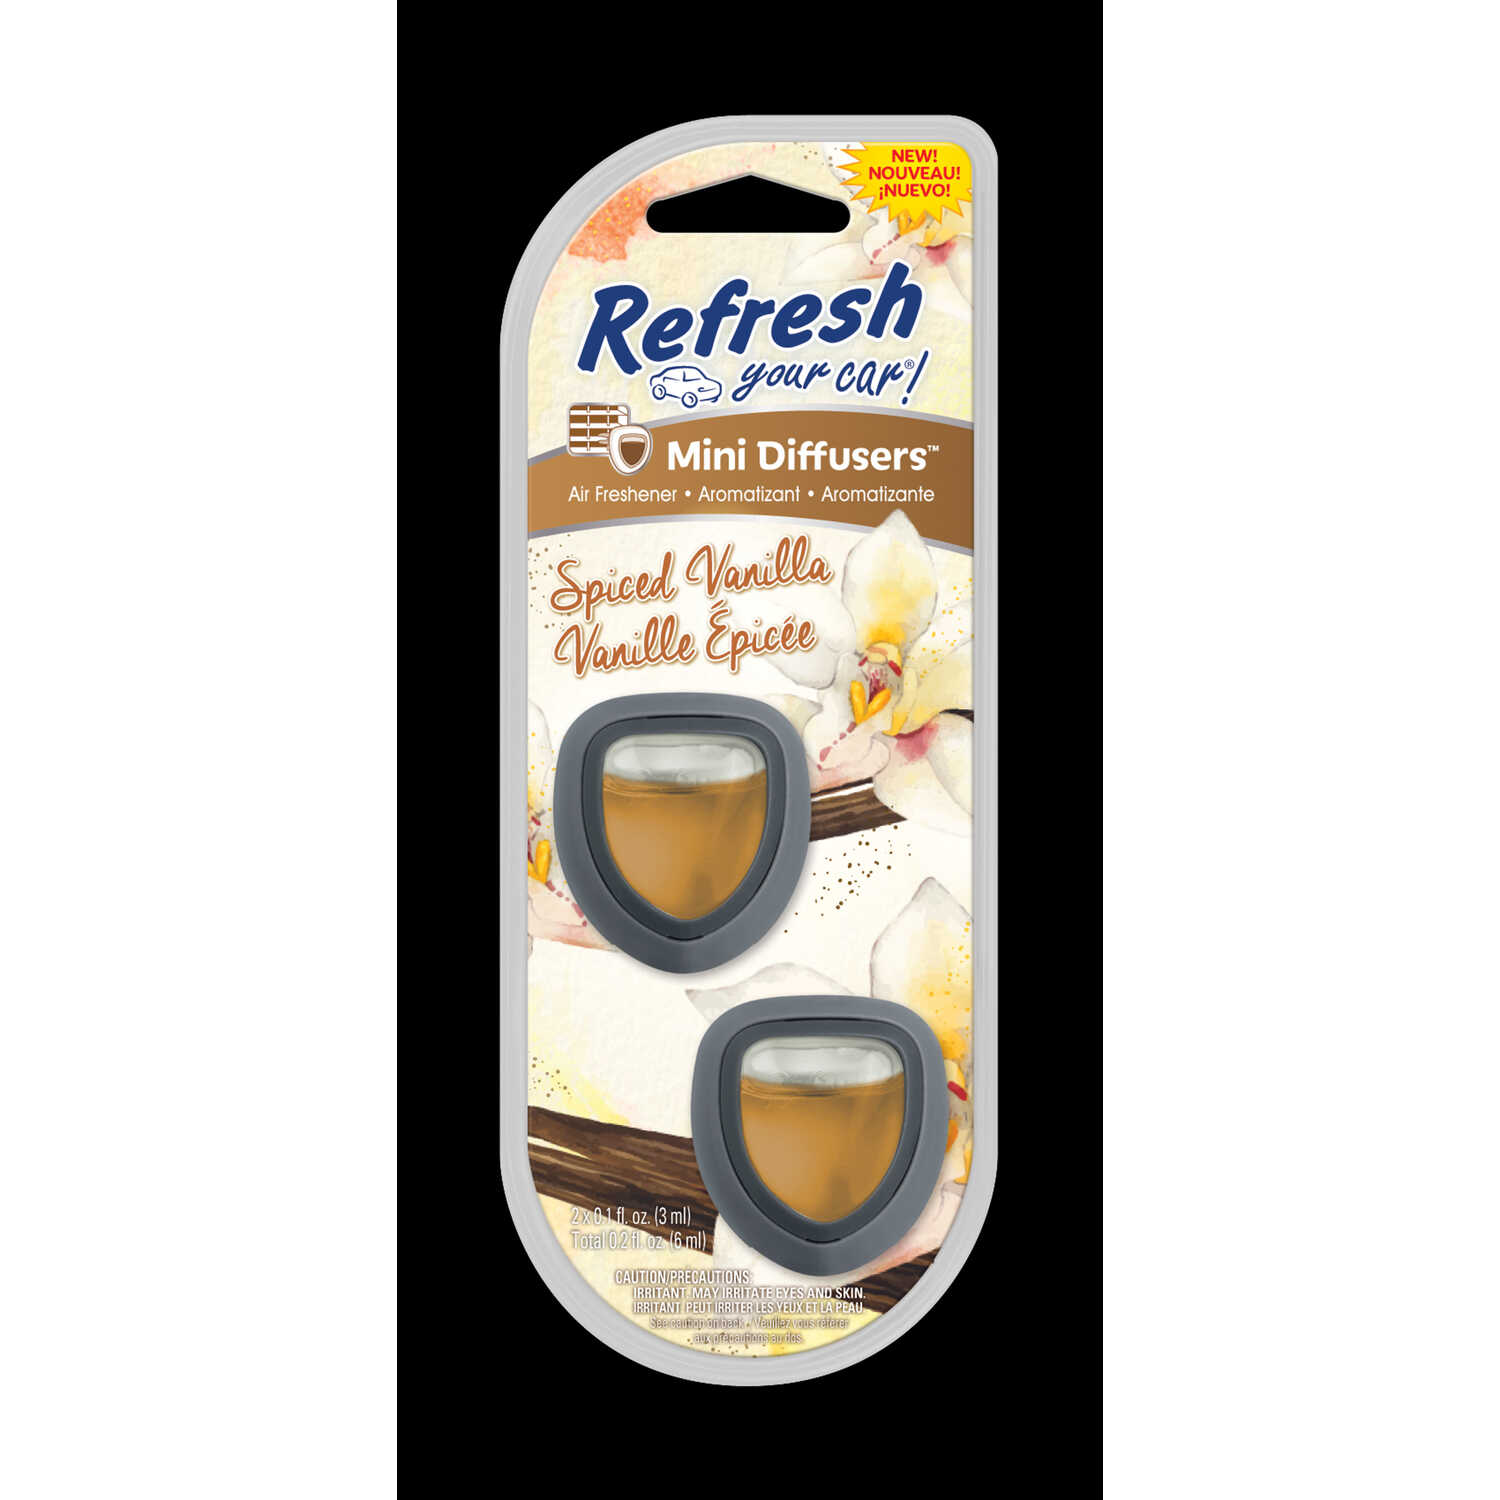 Refresh Your Car!  Mini Diffusers  Spiced Vanilla Scent Air Freshener  0.2 oz.